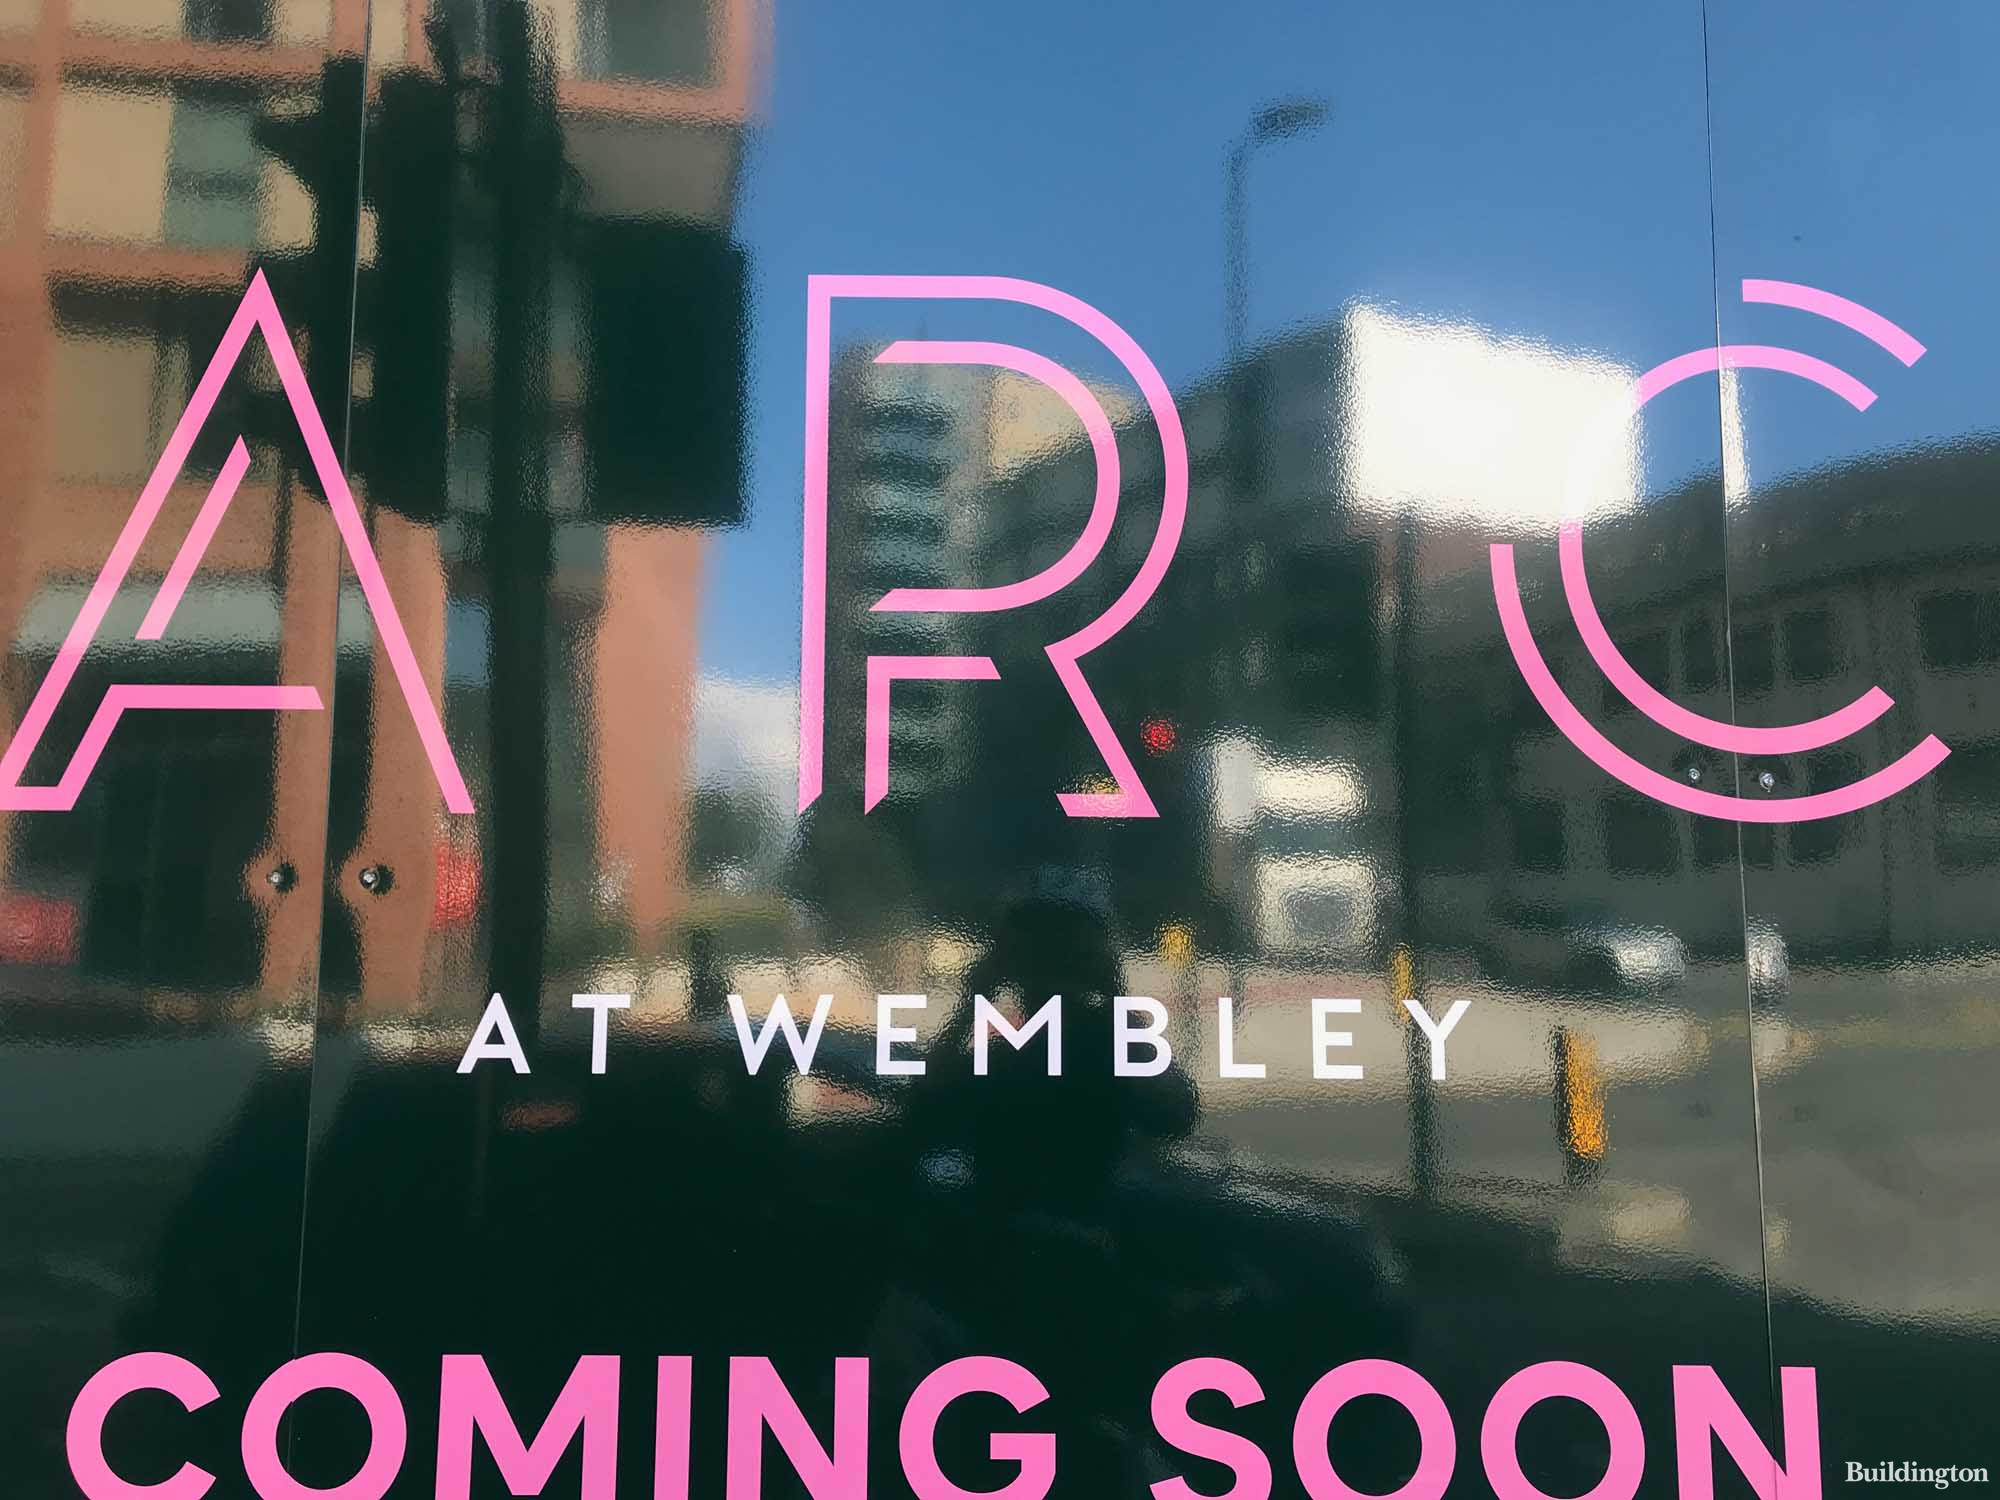 ARC at Wembley - coming soon! The development on South Way in Wembley HA9.